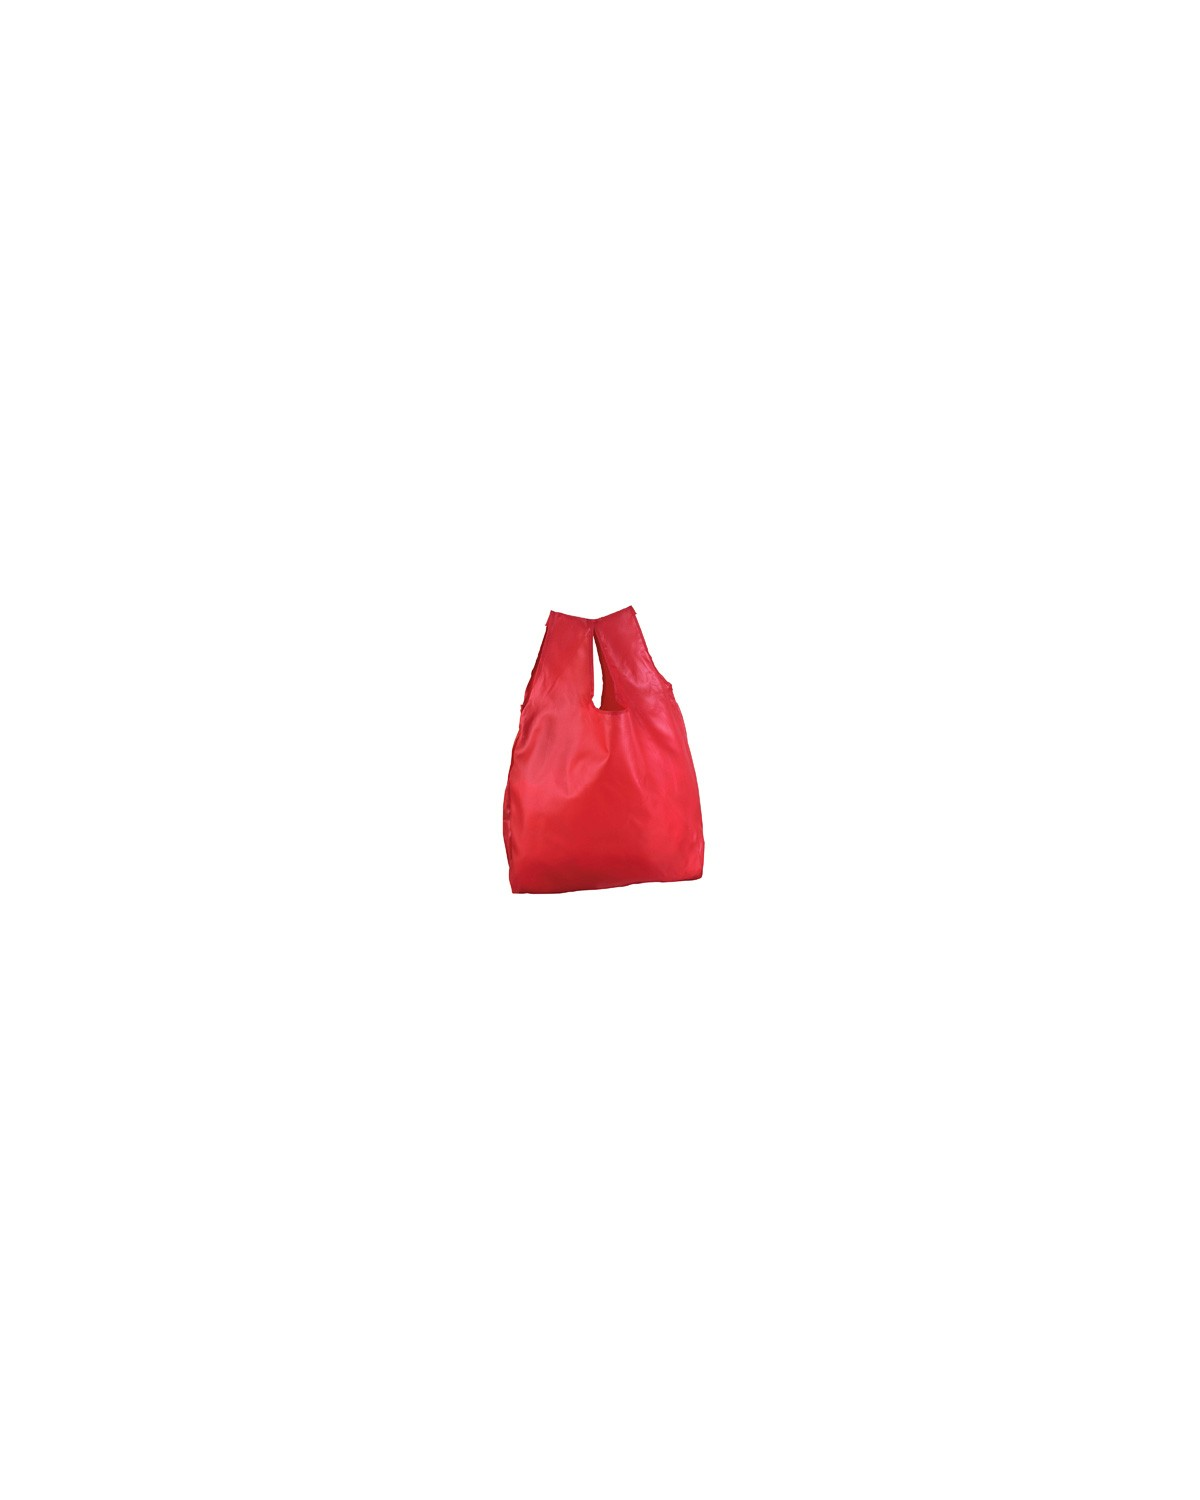 R1500 Liberty Bags RED